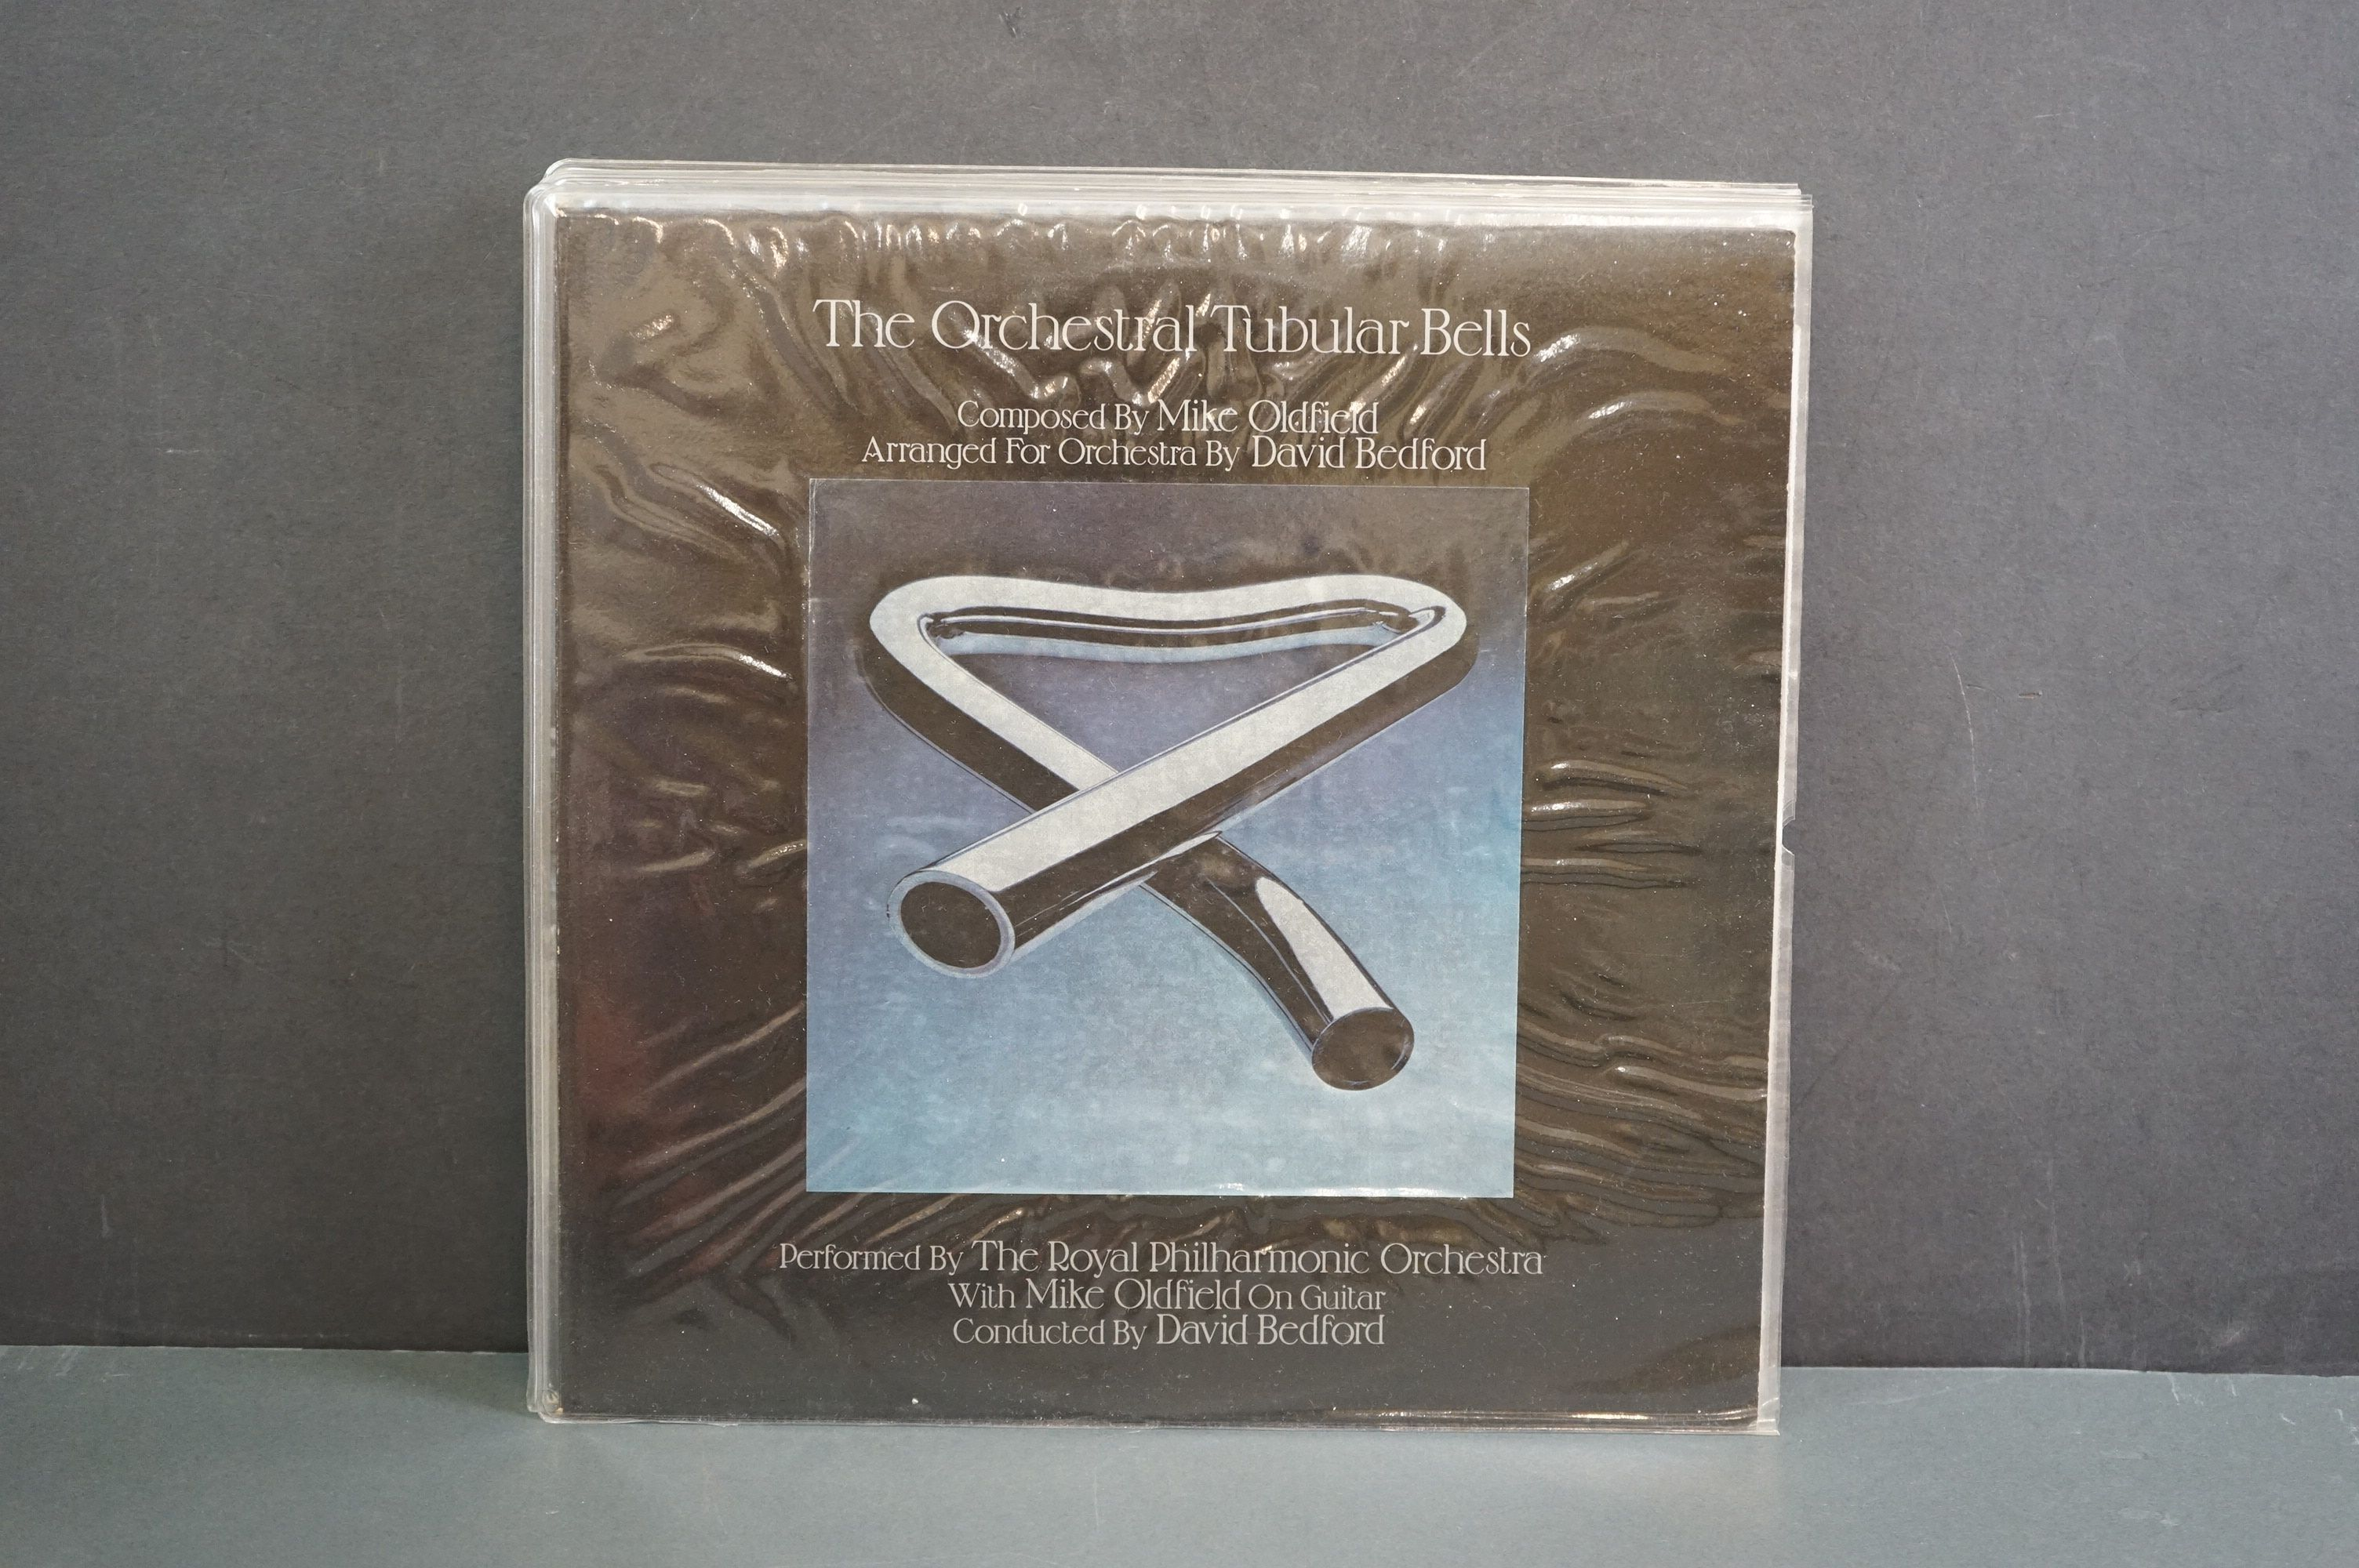 Vinyl - 14 Mike Oldfield LPs to include Tubular Bells, Five Miles Out, Best Of, Discovery etc, - Image 7 of 15